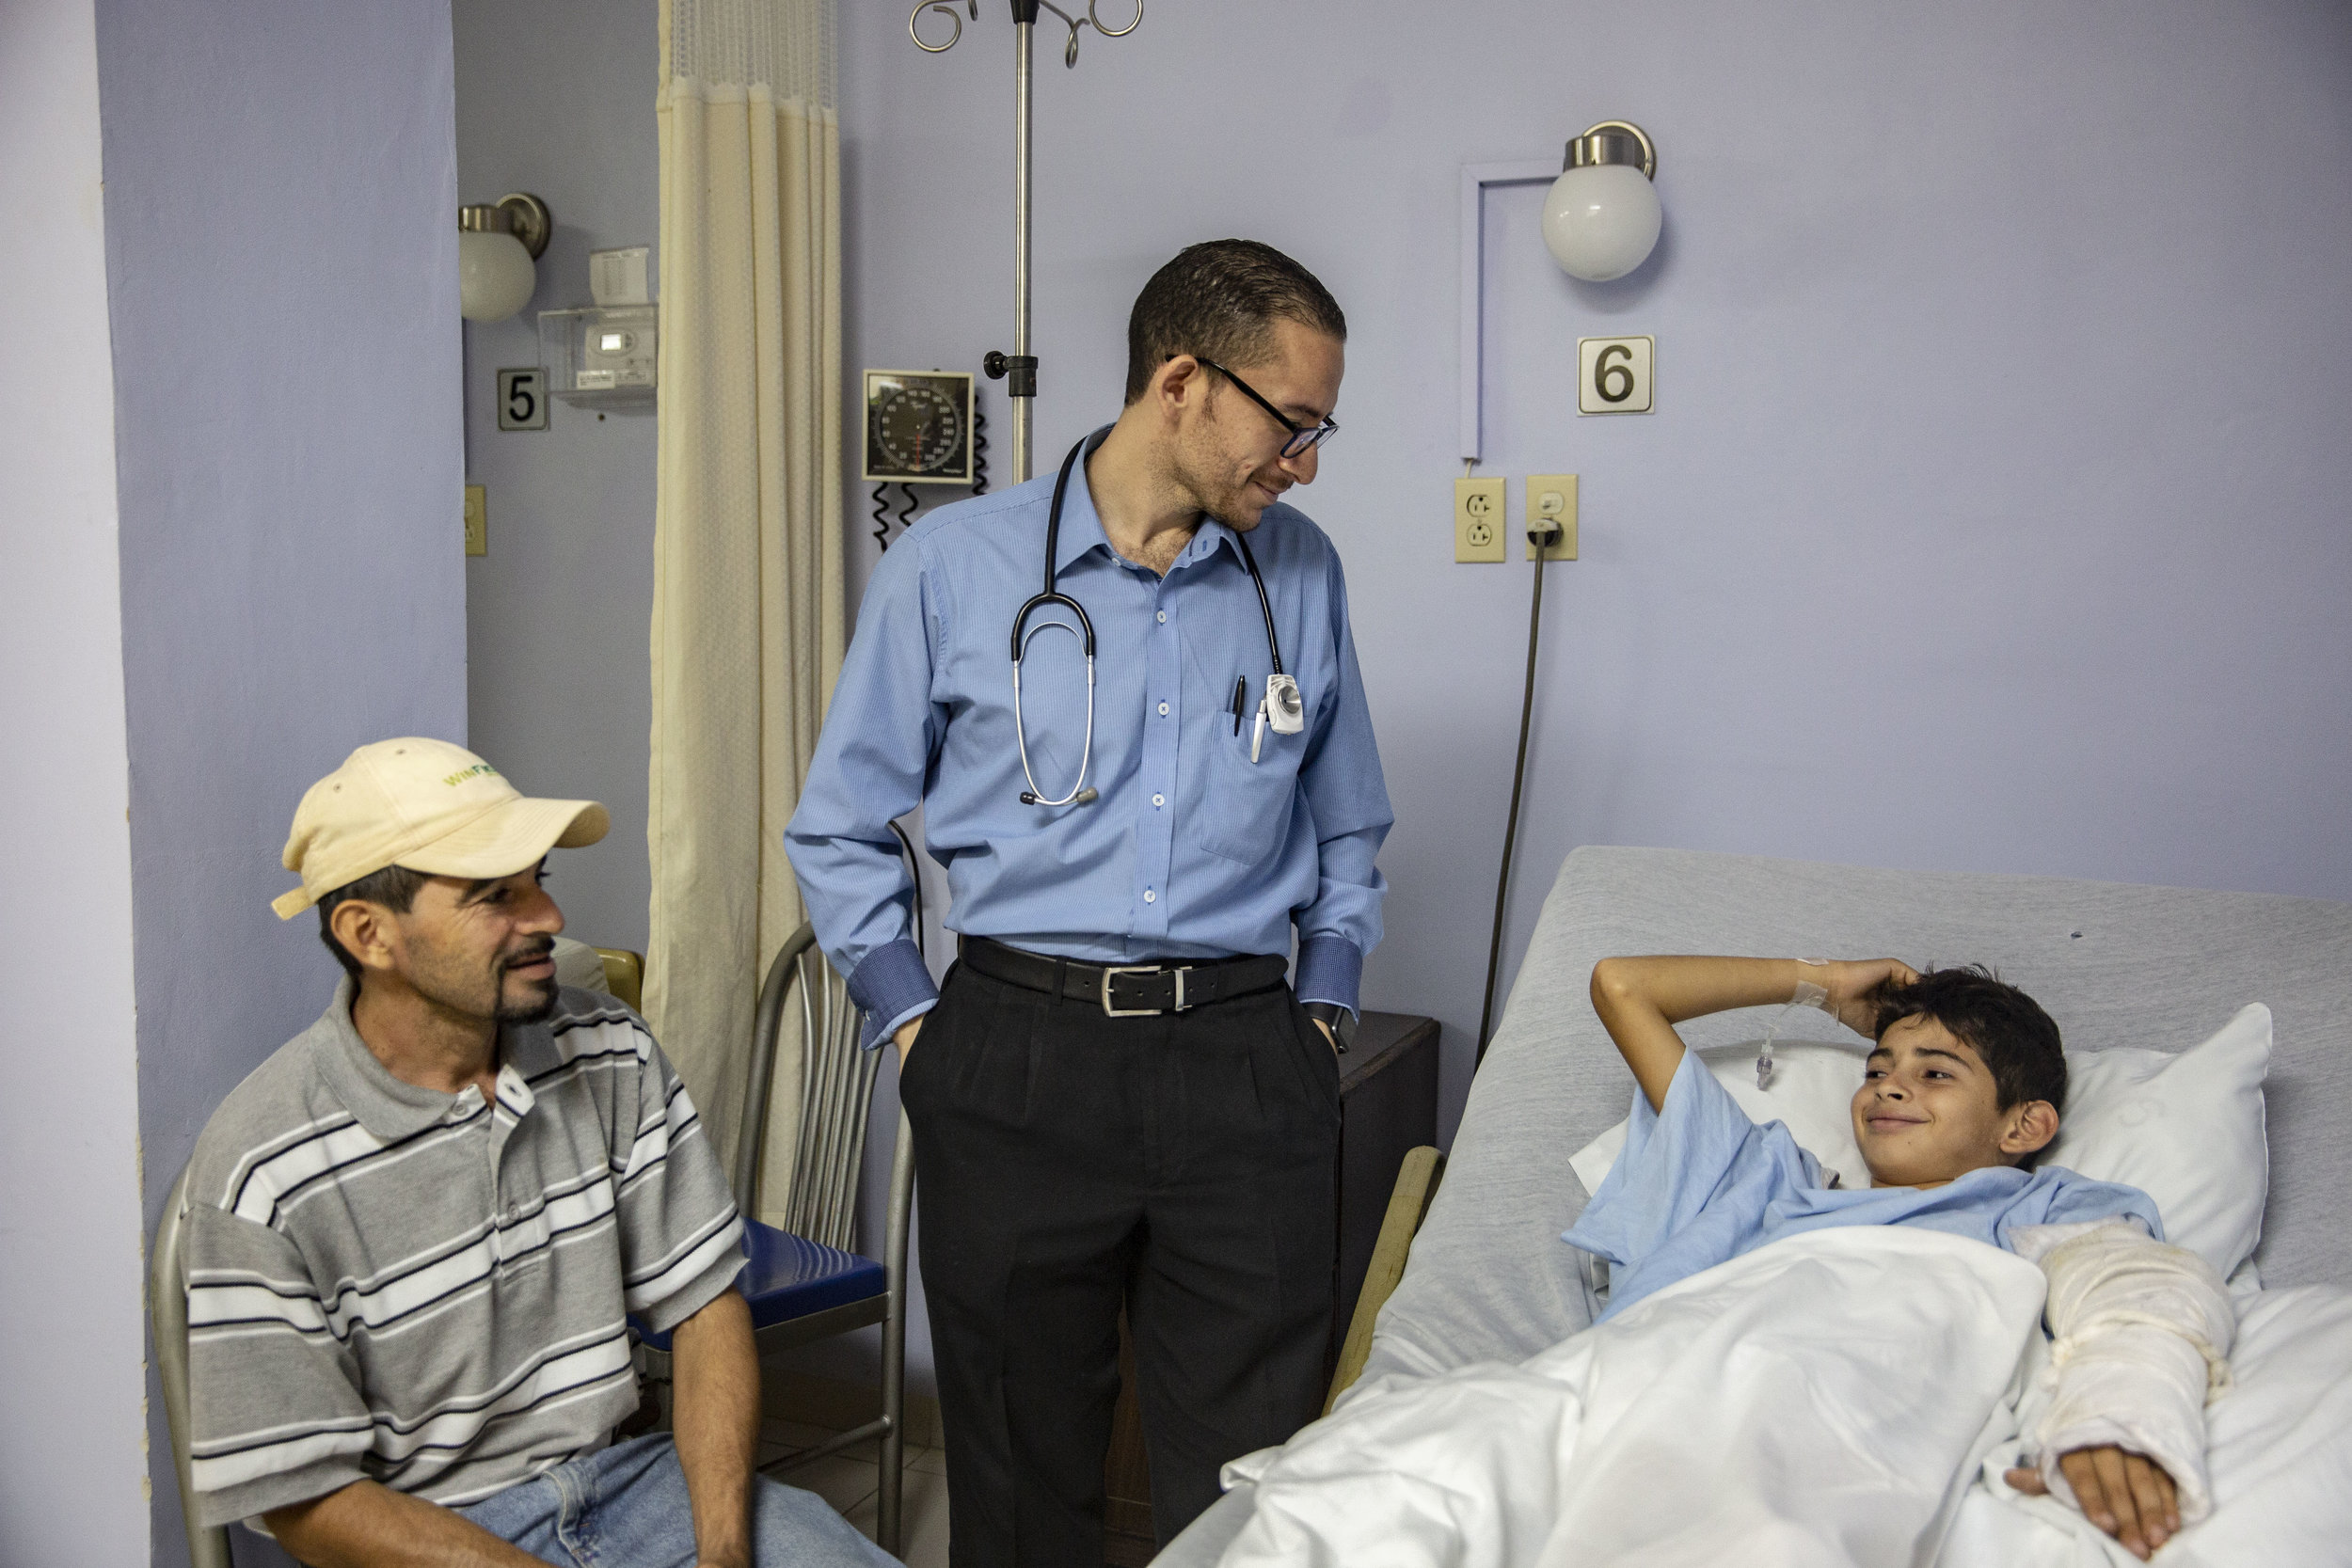 Dr.Hernandez, pedriatician, visits a boy who came out out surgery for a broken arm, at the Ruth Paz hospital in San Pedro Sula, Honduras.